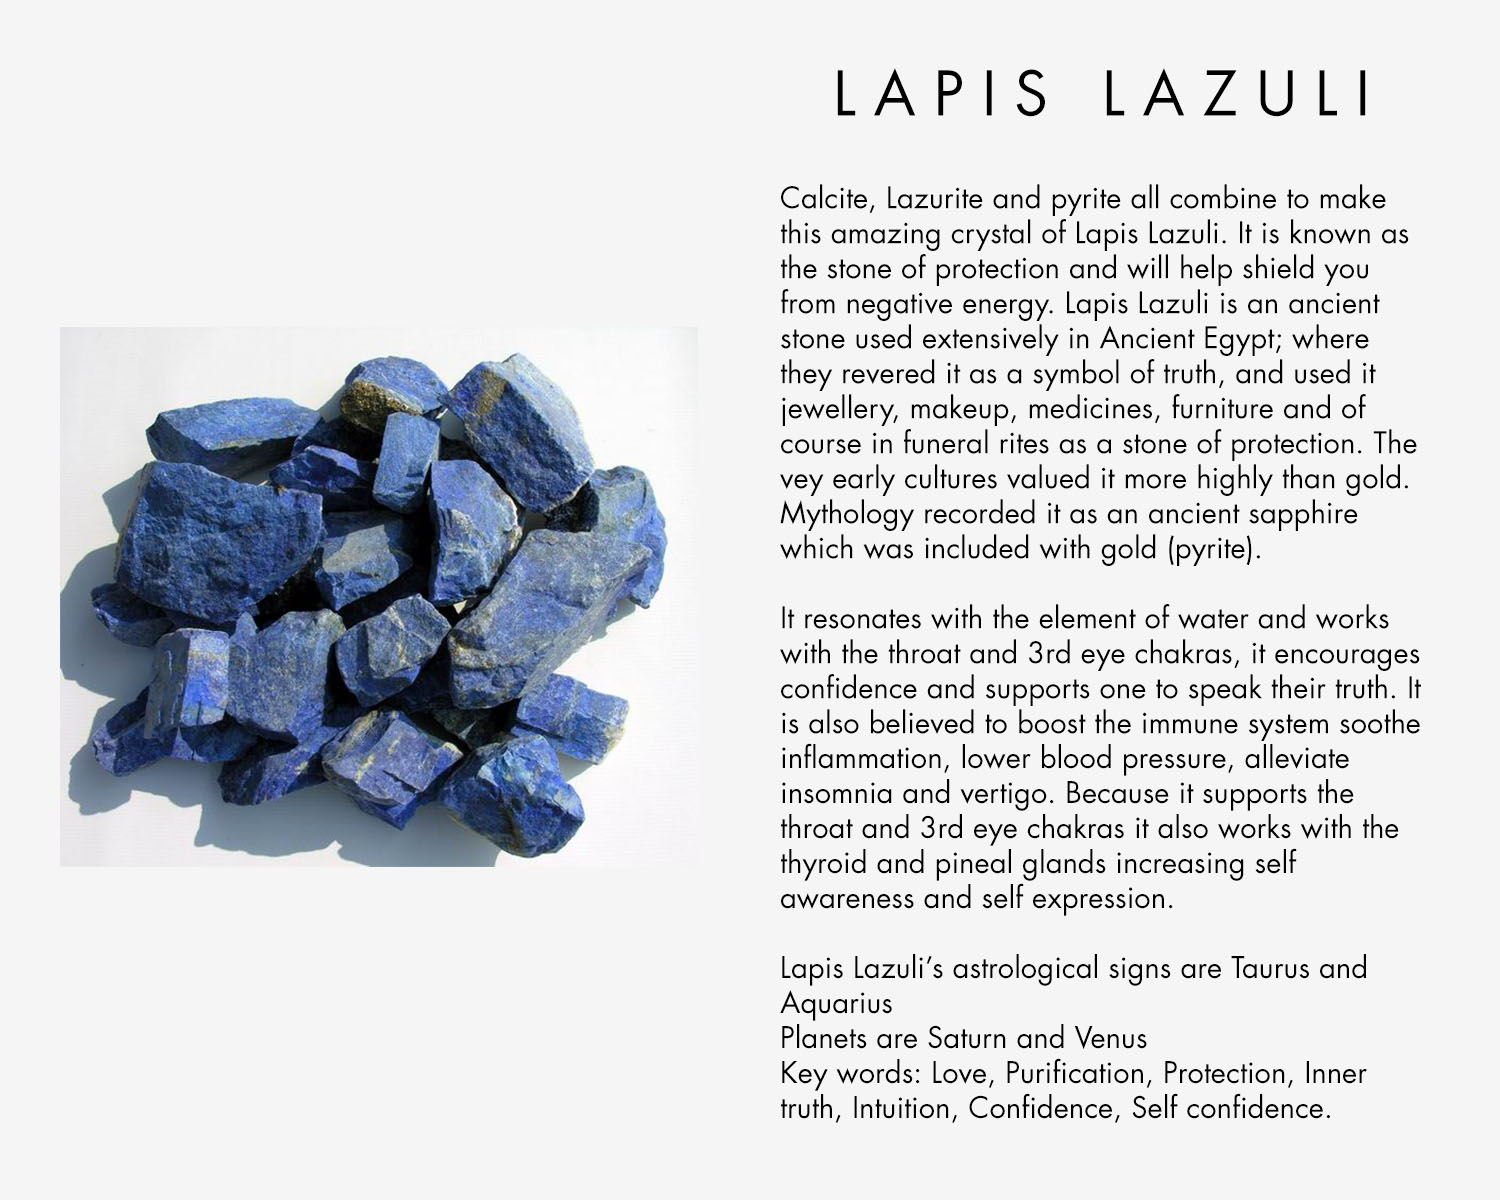 Calcite, Lazurite and pyrite all combine to make this amazing crystal of Lapis Lazuli, it is known as the stone of protection and will help shield you from negative energy. Lapis Lazuli is an ancient stone used extensively in Ancient Egypt; where they revered it as a symbol of truth, and used it jewellery, makeup, medicines, furniture and of course in funeral rites as a stone of protection. The vey early cultures valued it more highly than gold. Mythology recorded it as an ancient sapphire which was included with gold (pyrite). It resonates with the element of water and works with the throat and 3rd eye chakras, it encourages confidence and supports one to speak their truth. It is also believed to boost the immune system soothe inflammation, lower blood pressure, alleviate insomnia and vertigo. Because it supports the throat and 3rd eye chakras it also works with the thyroid and pineal glands increasing self awareness and self expression. Lapis Lazuli's astrological signs are Taurus and Aquarius Planets are Saturn and Venus Key words: Love, Purification, Protection, Inner truth, Intuition, Confidence, Self confidence.